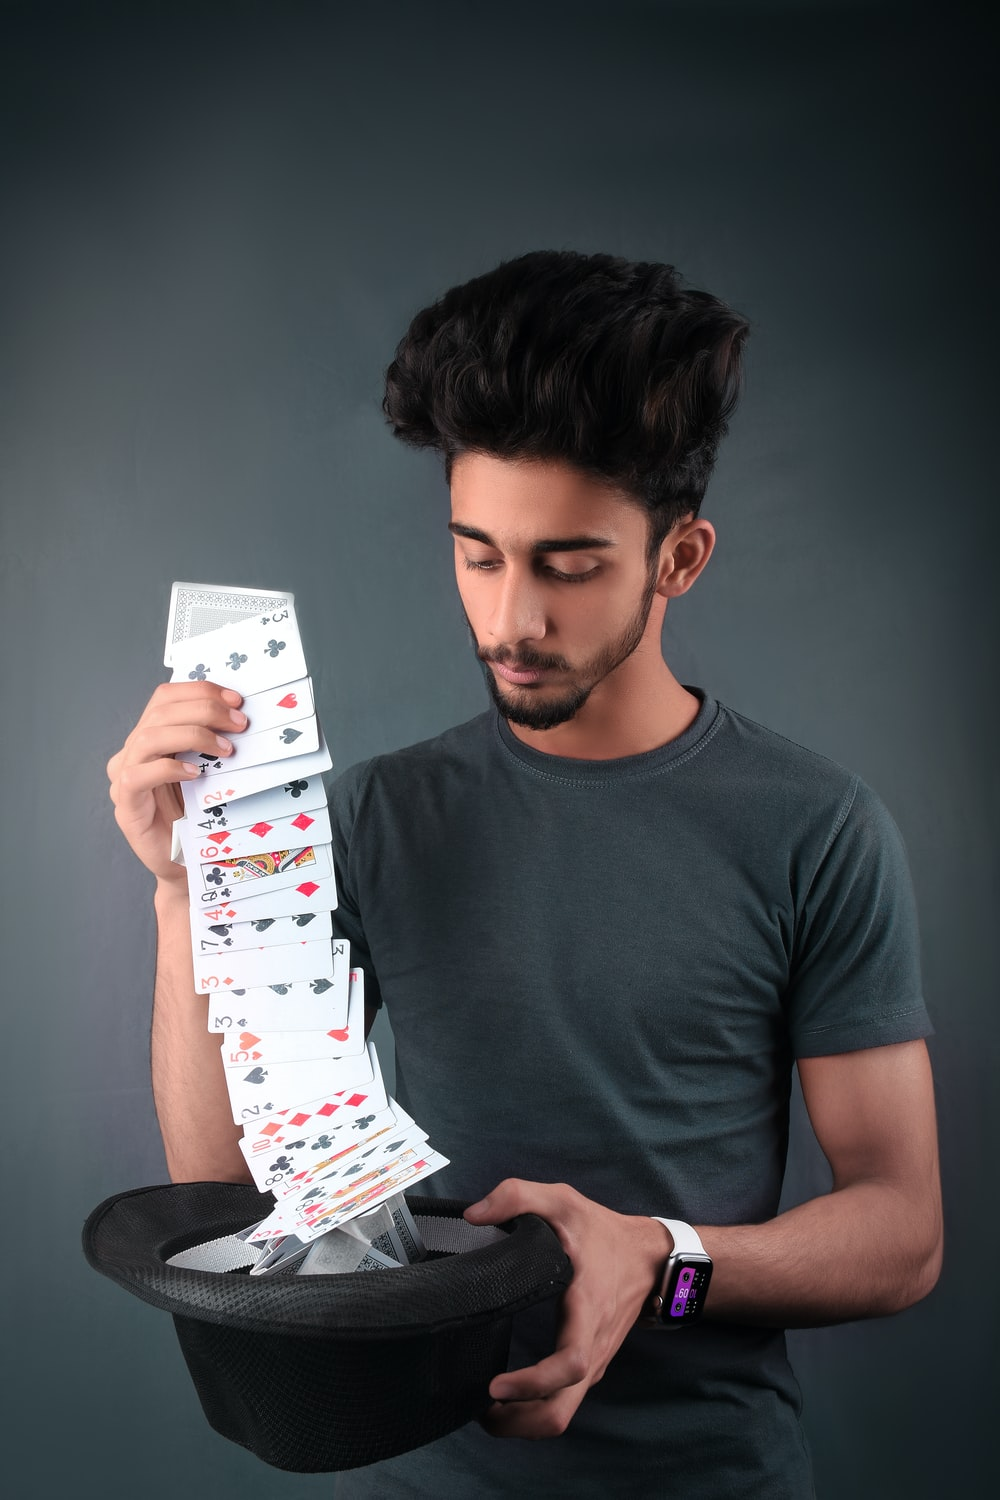 man in gray crew neck t-shirt holding white and red playing cards